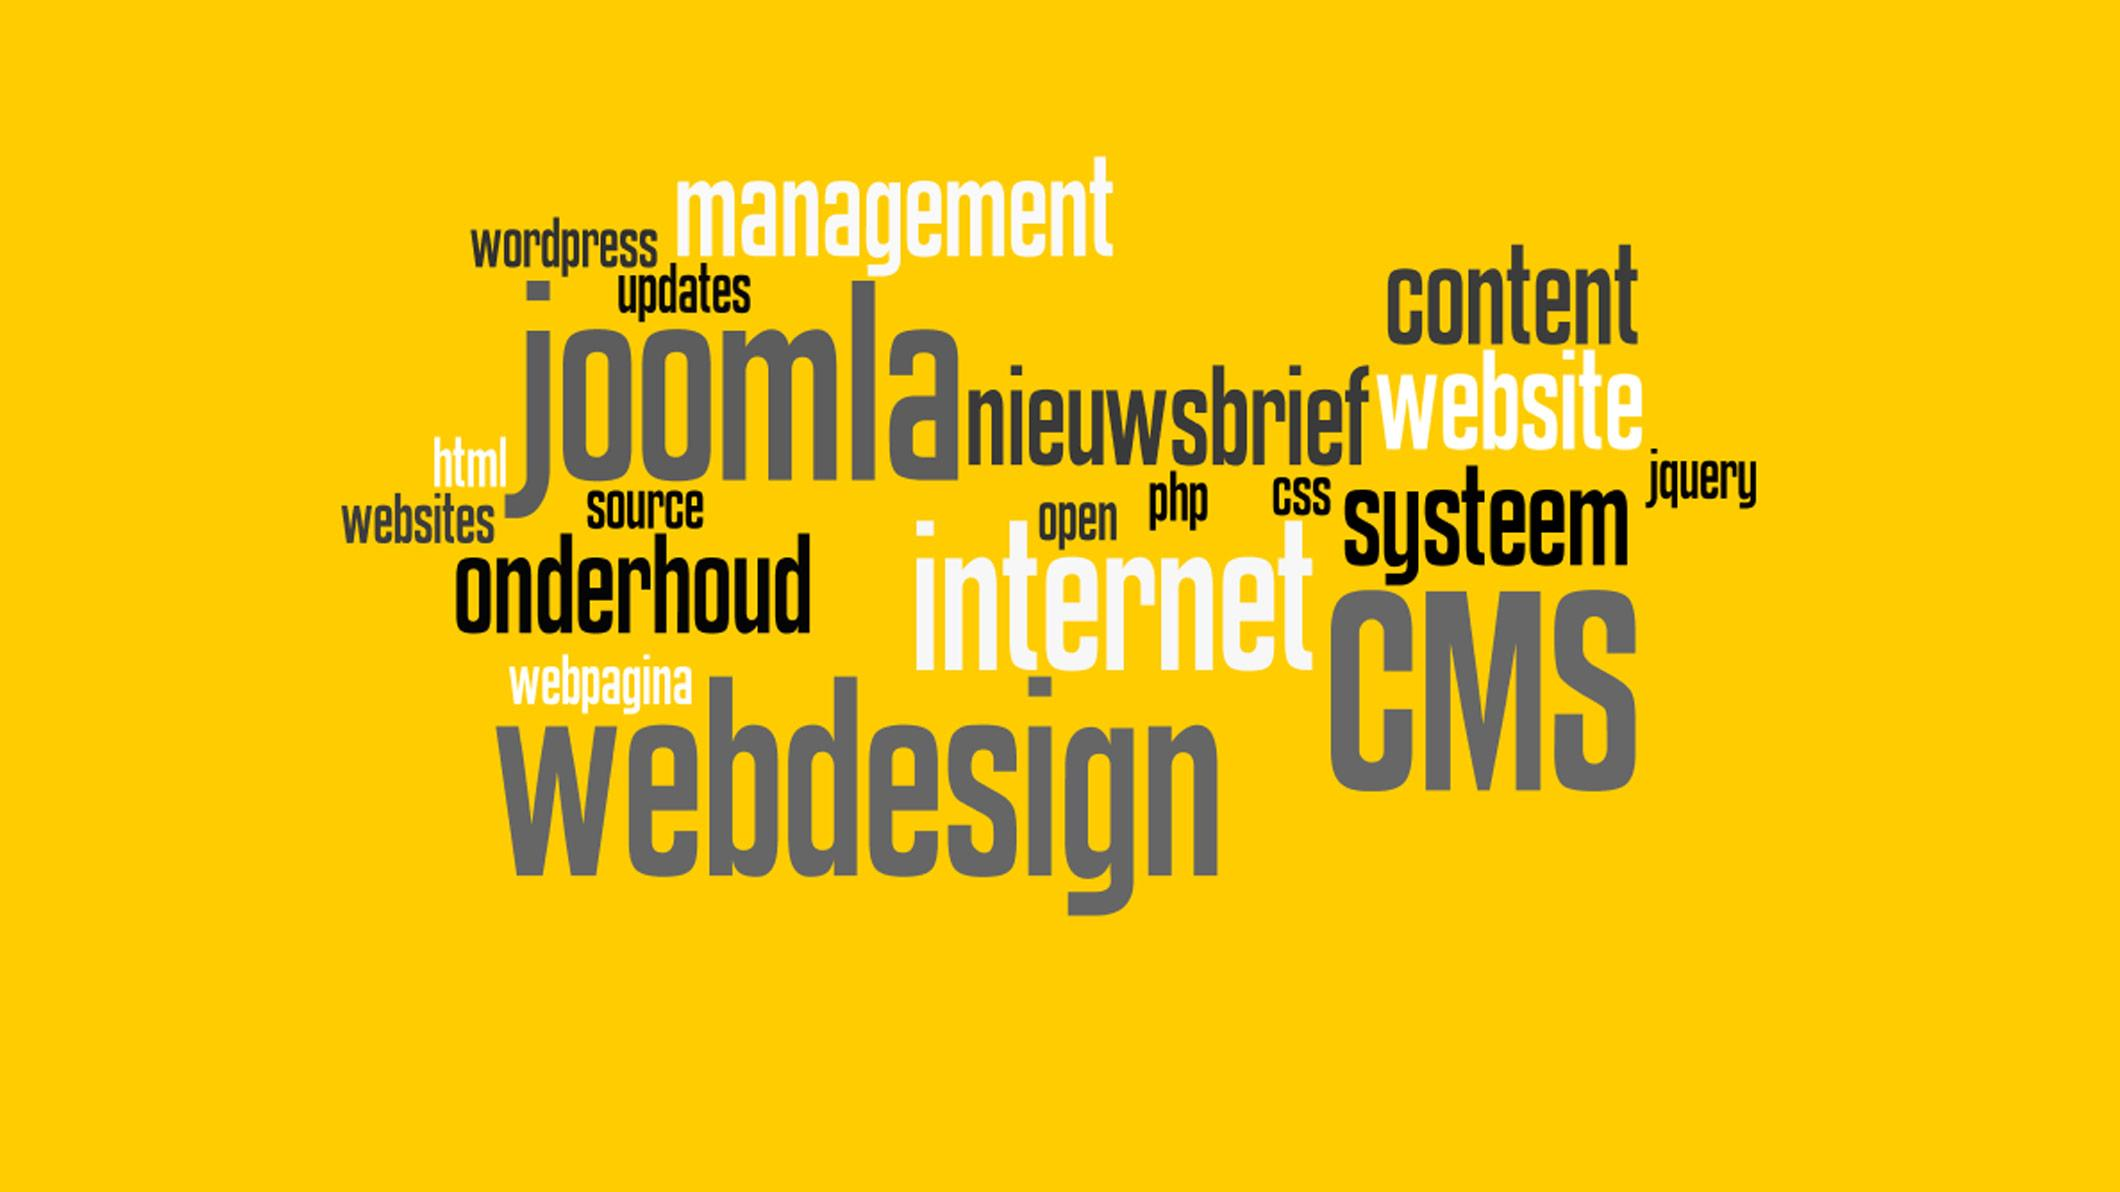 header-googleplus Yweb Design - websites en internet toepassingen